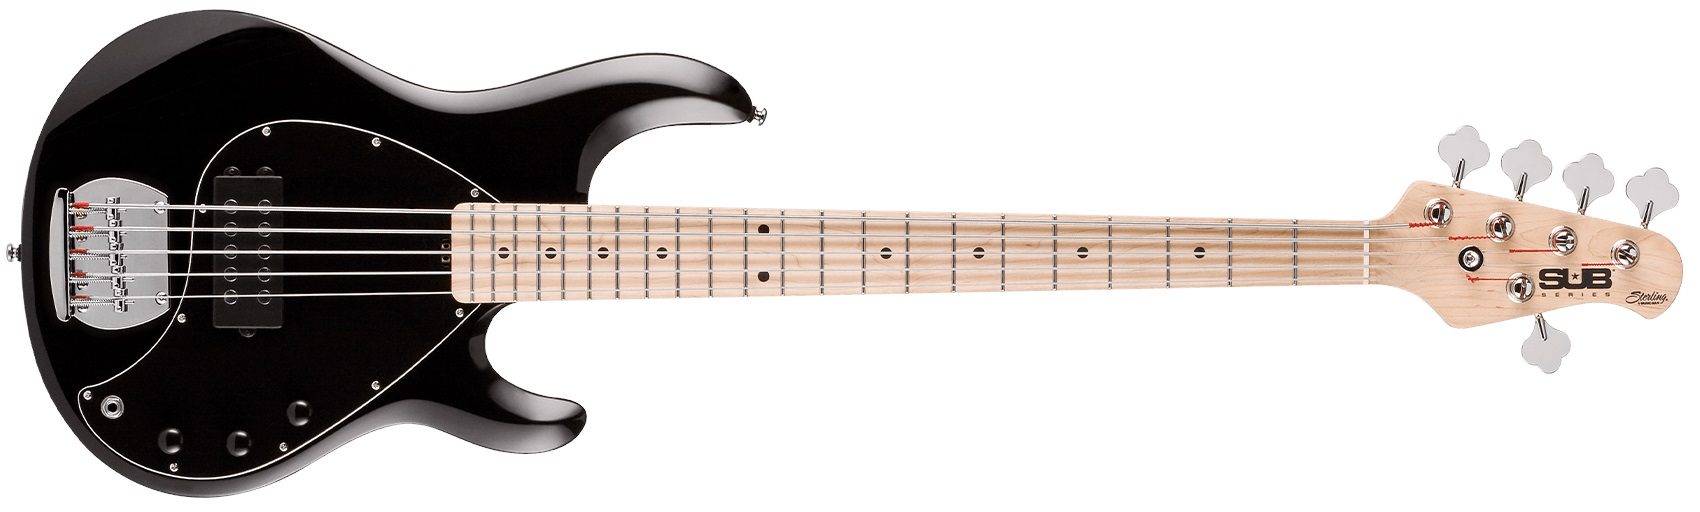 Sterling by Music Man SUB StingRay5 Black